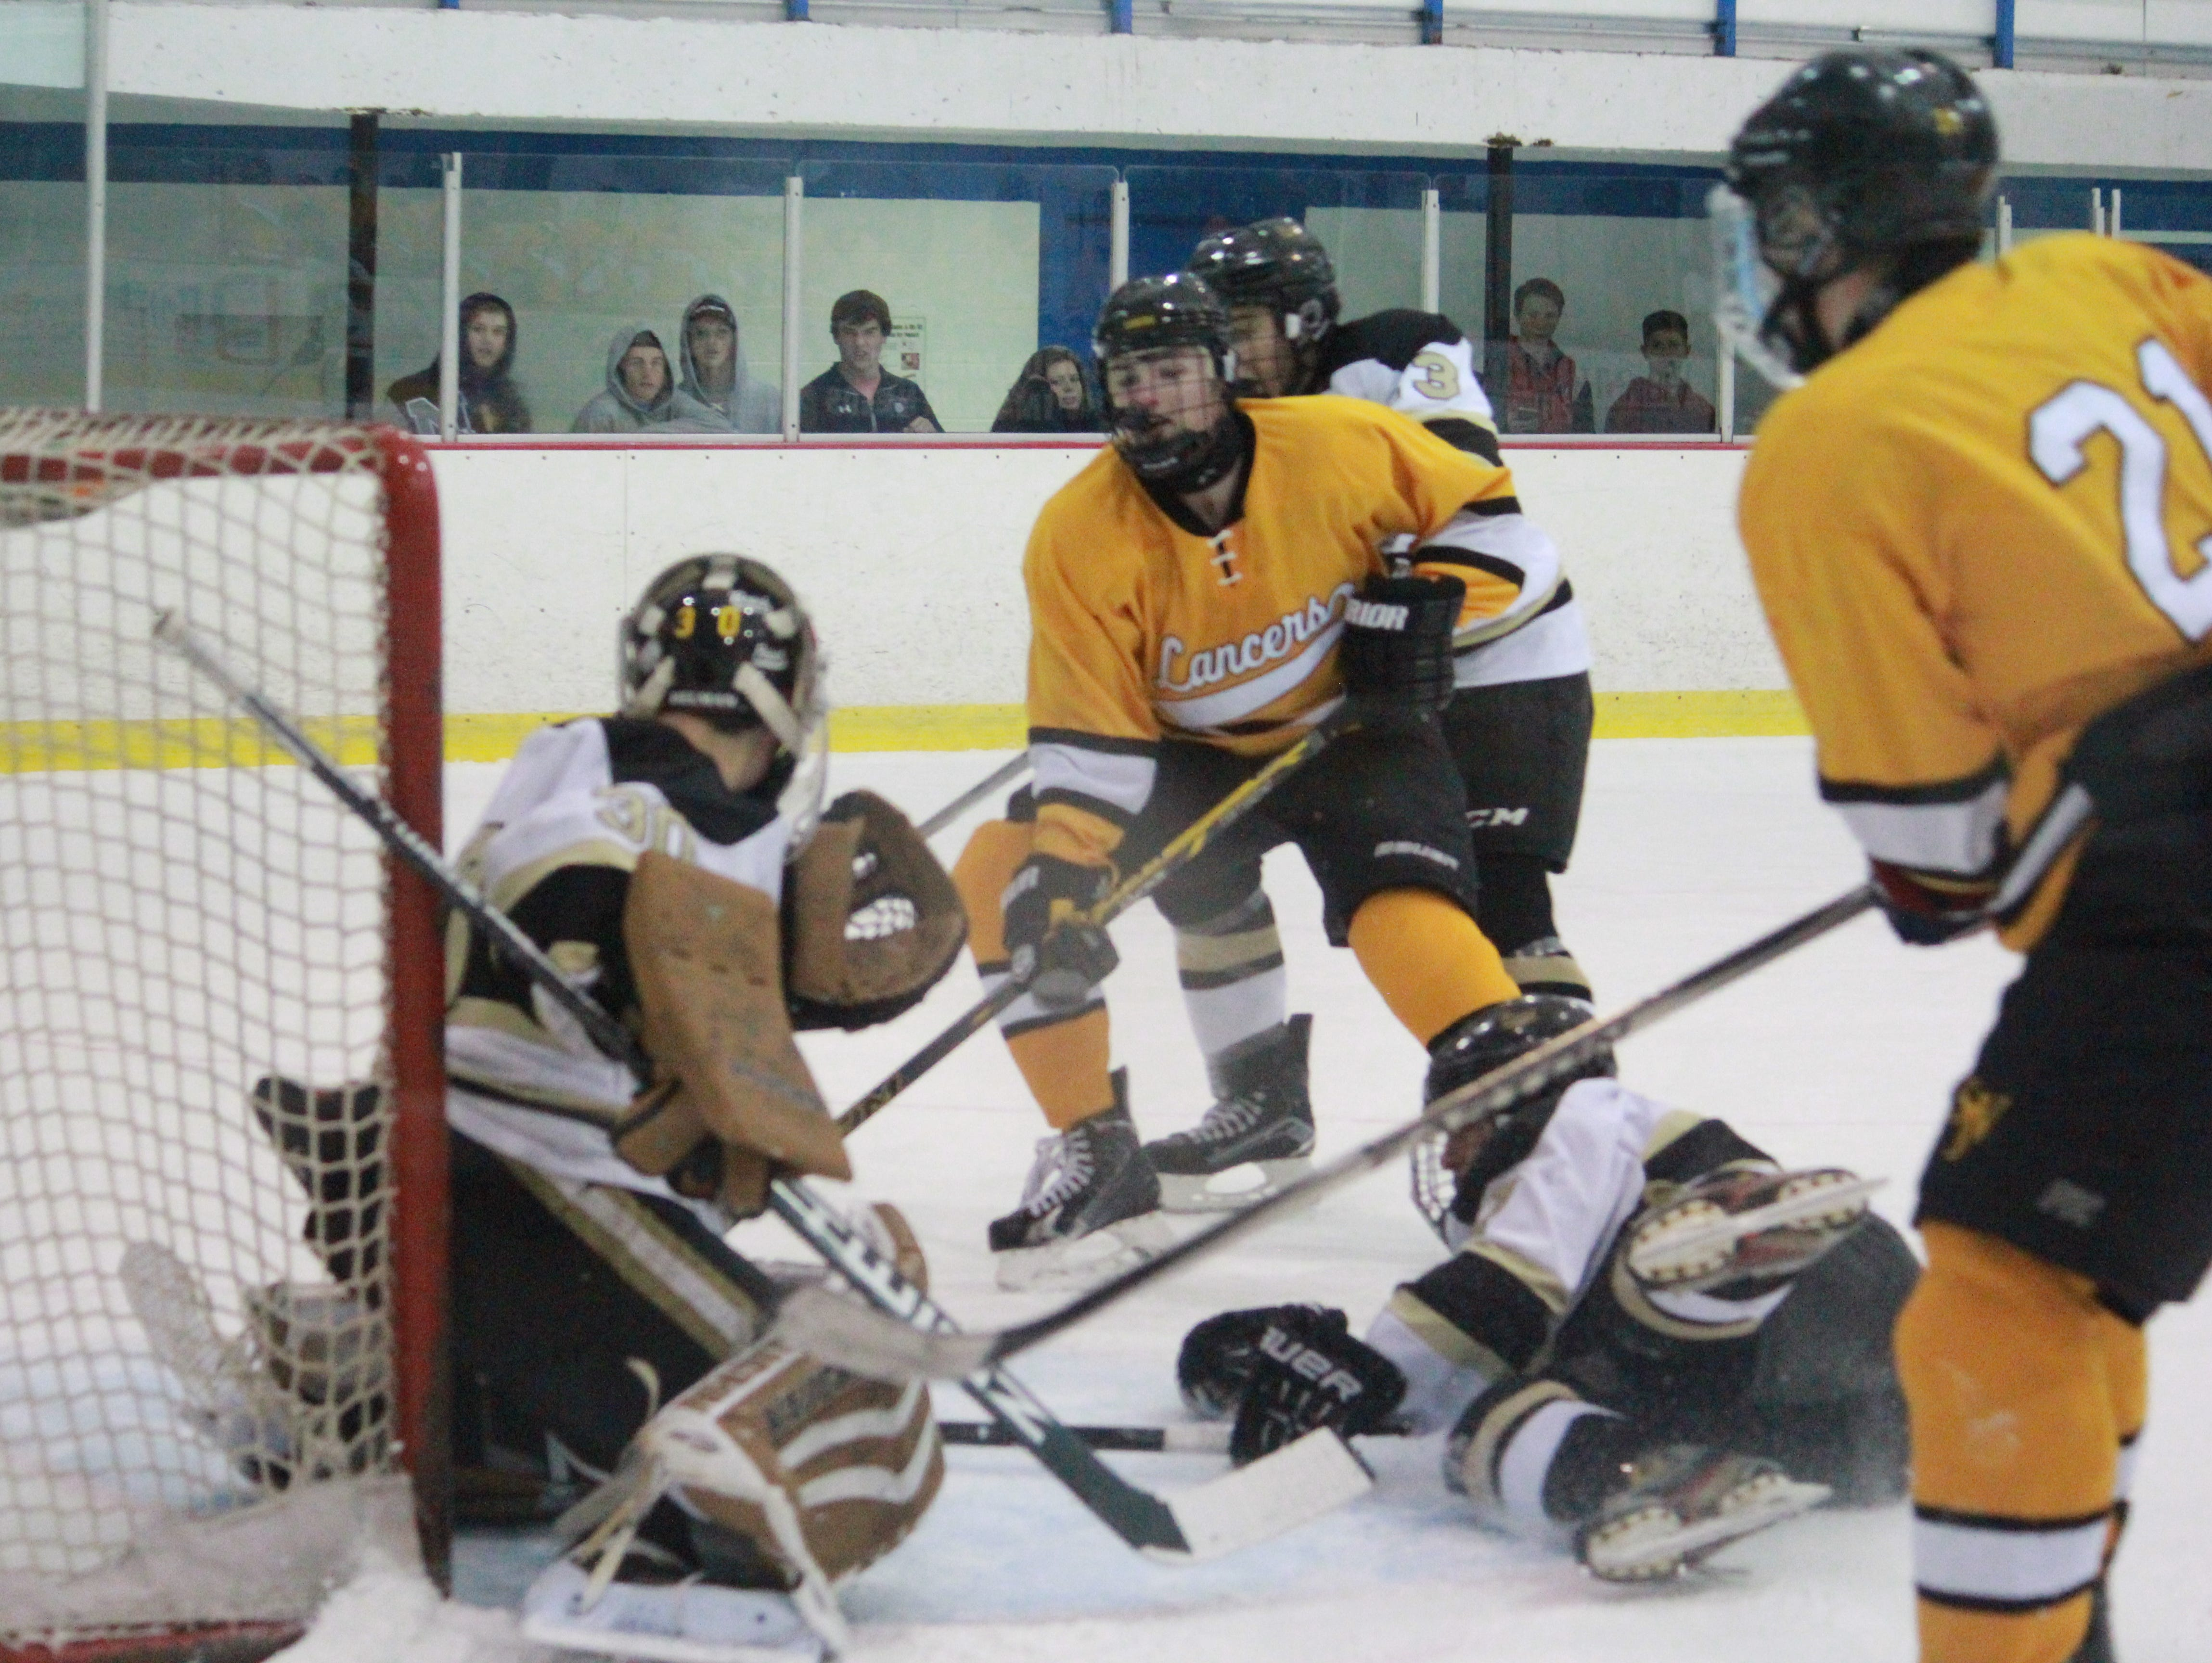 St. John Vianney skated to a 3-2 win over Point Boro on Friday at the Ocean Ice Palace.